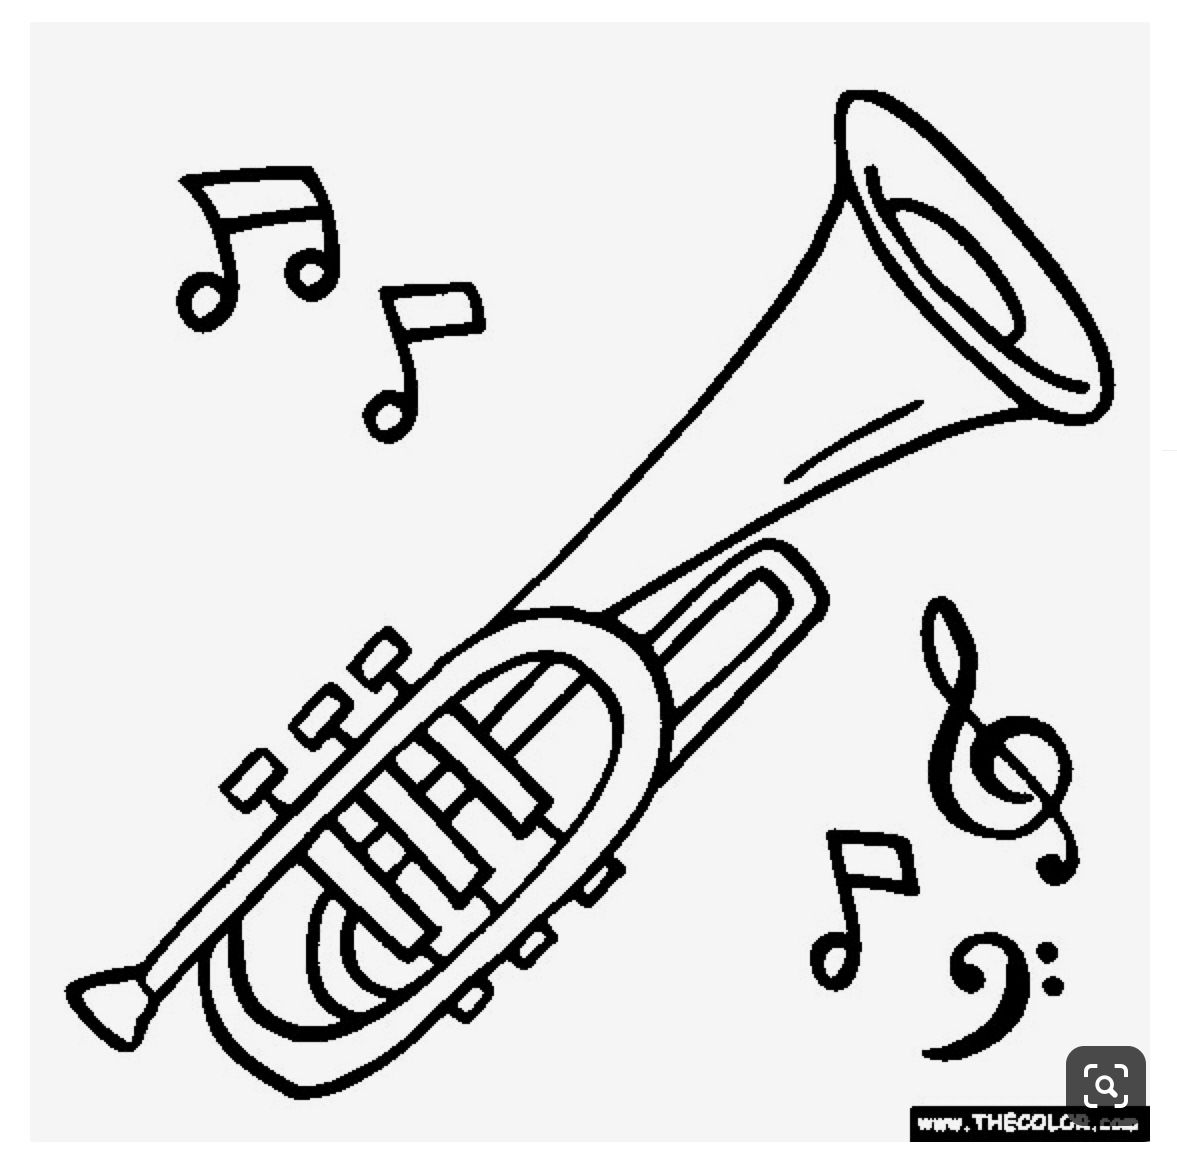 sketches of musical instruments how to draw an instrument easy step by step wind instruments musical of sketches